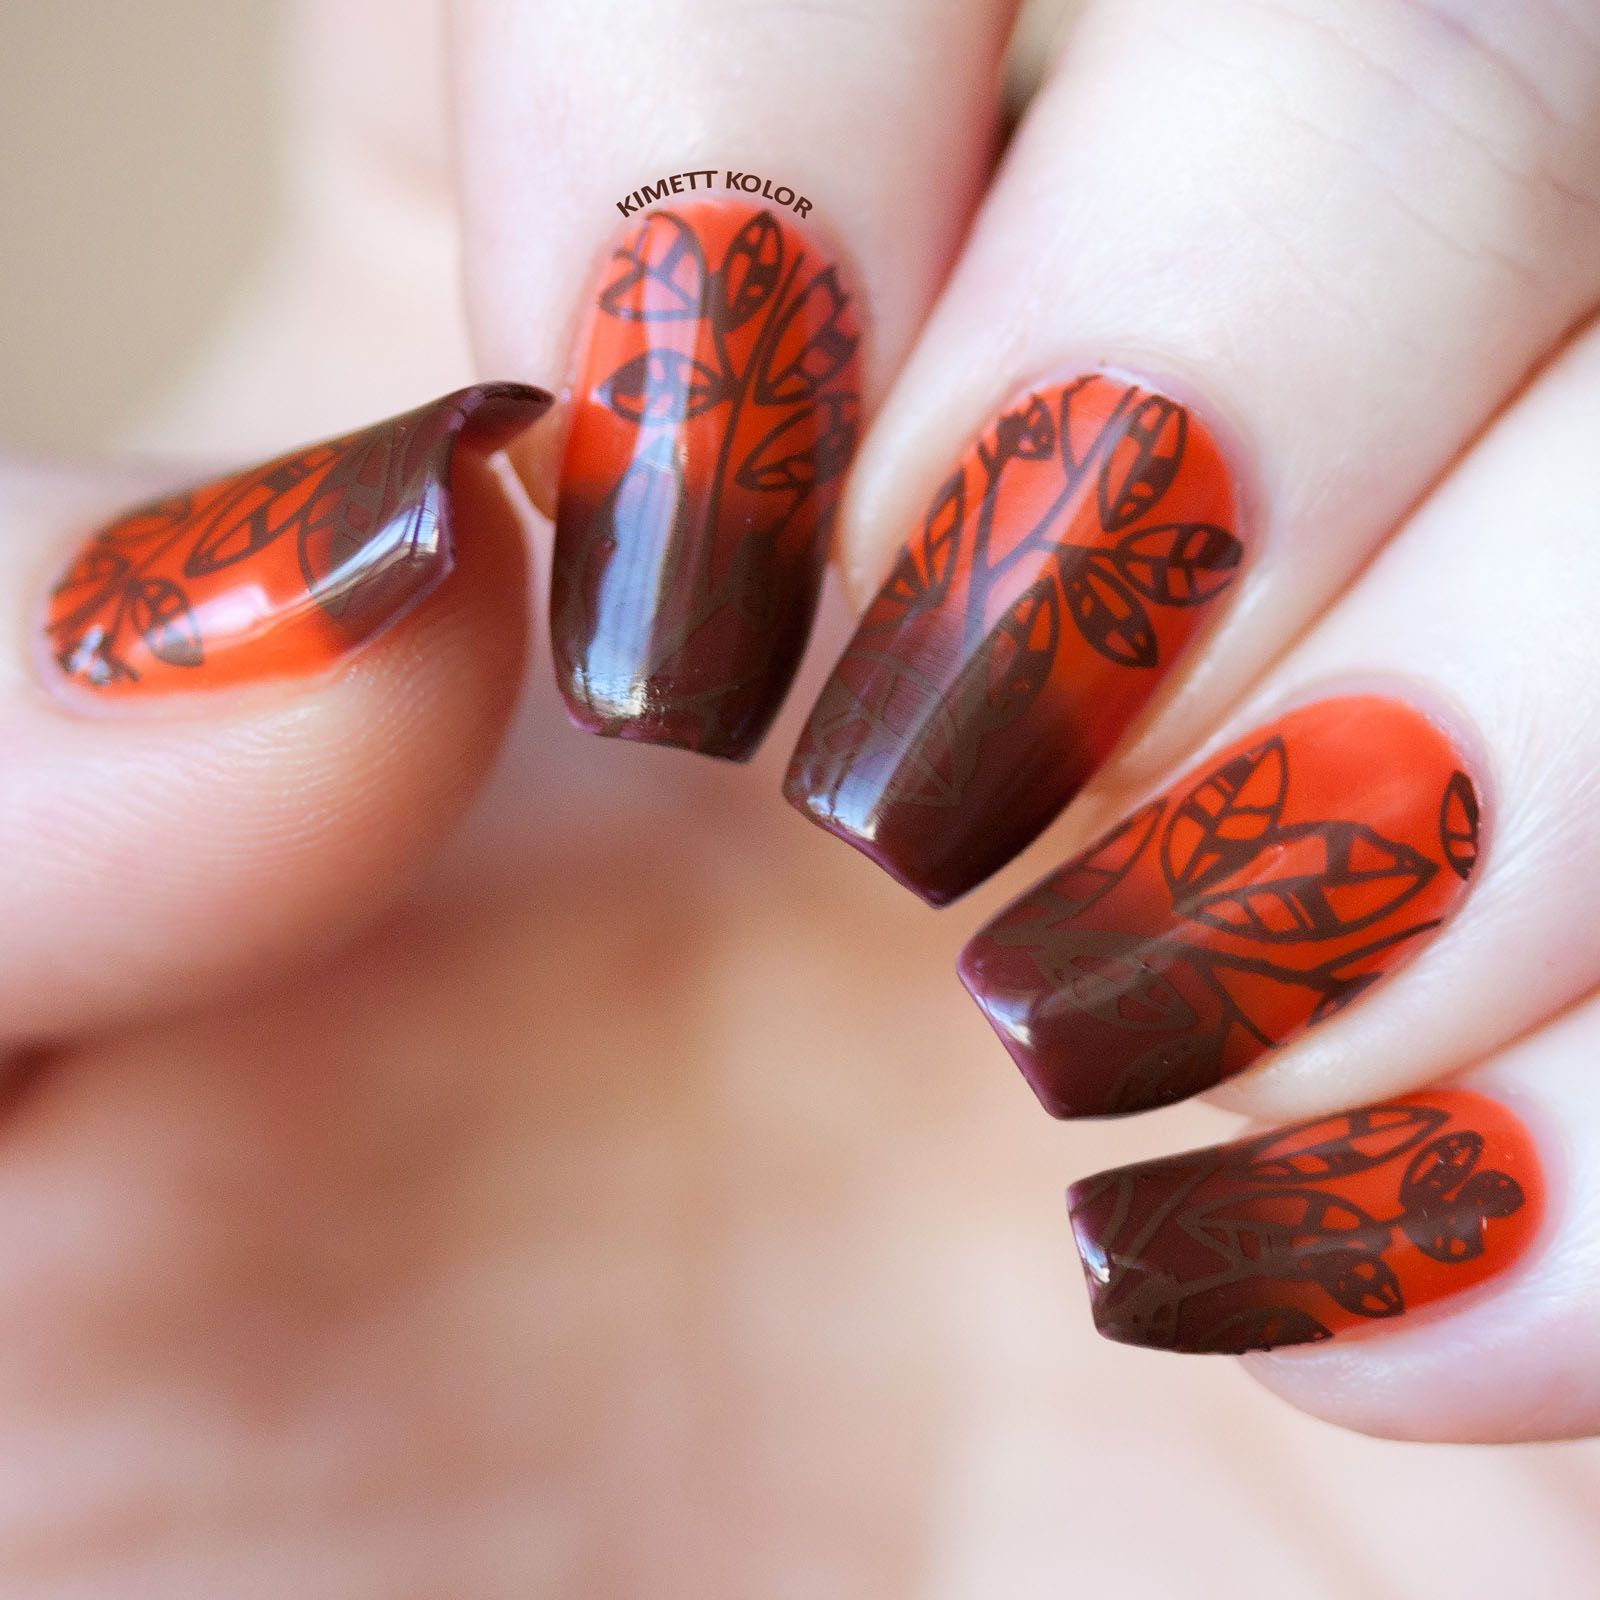 Stamping nail art with thermal color changing gel polish.